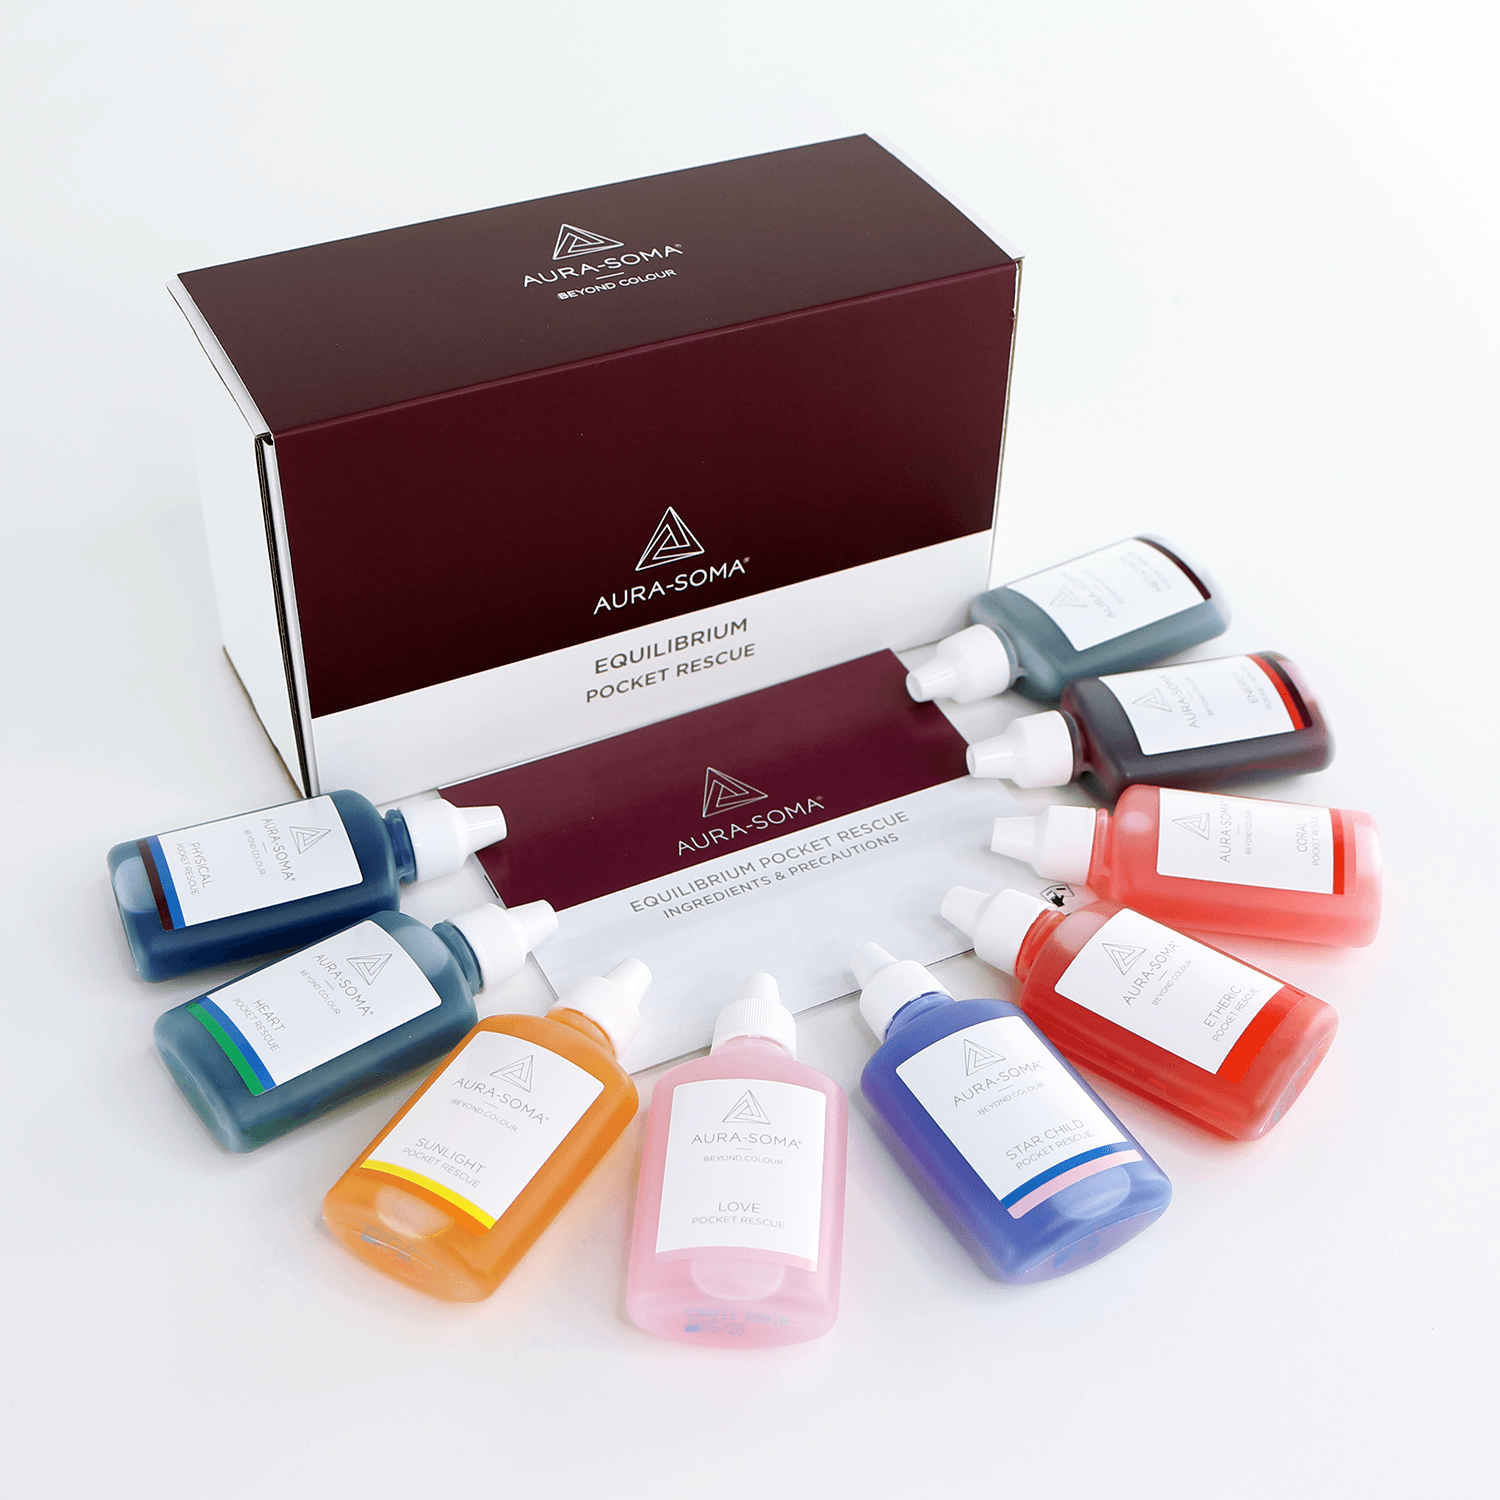 Aura-Soma Equilibrium Pocket Rescue Set 9 x 25 ml